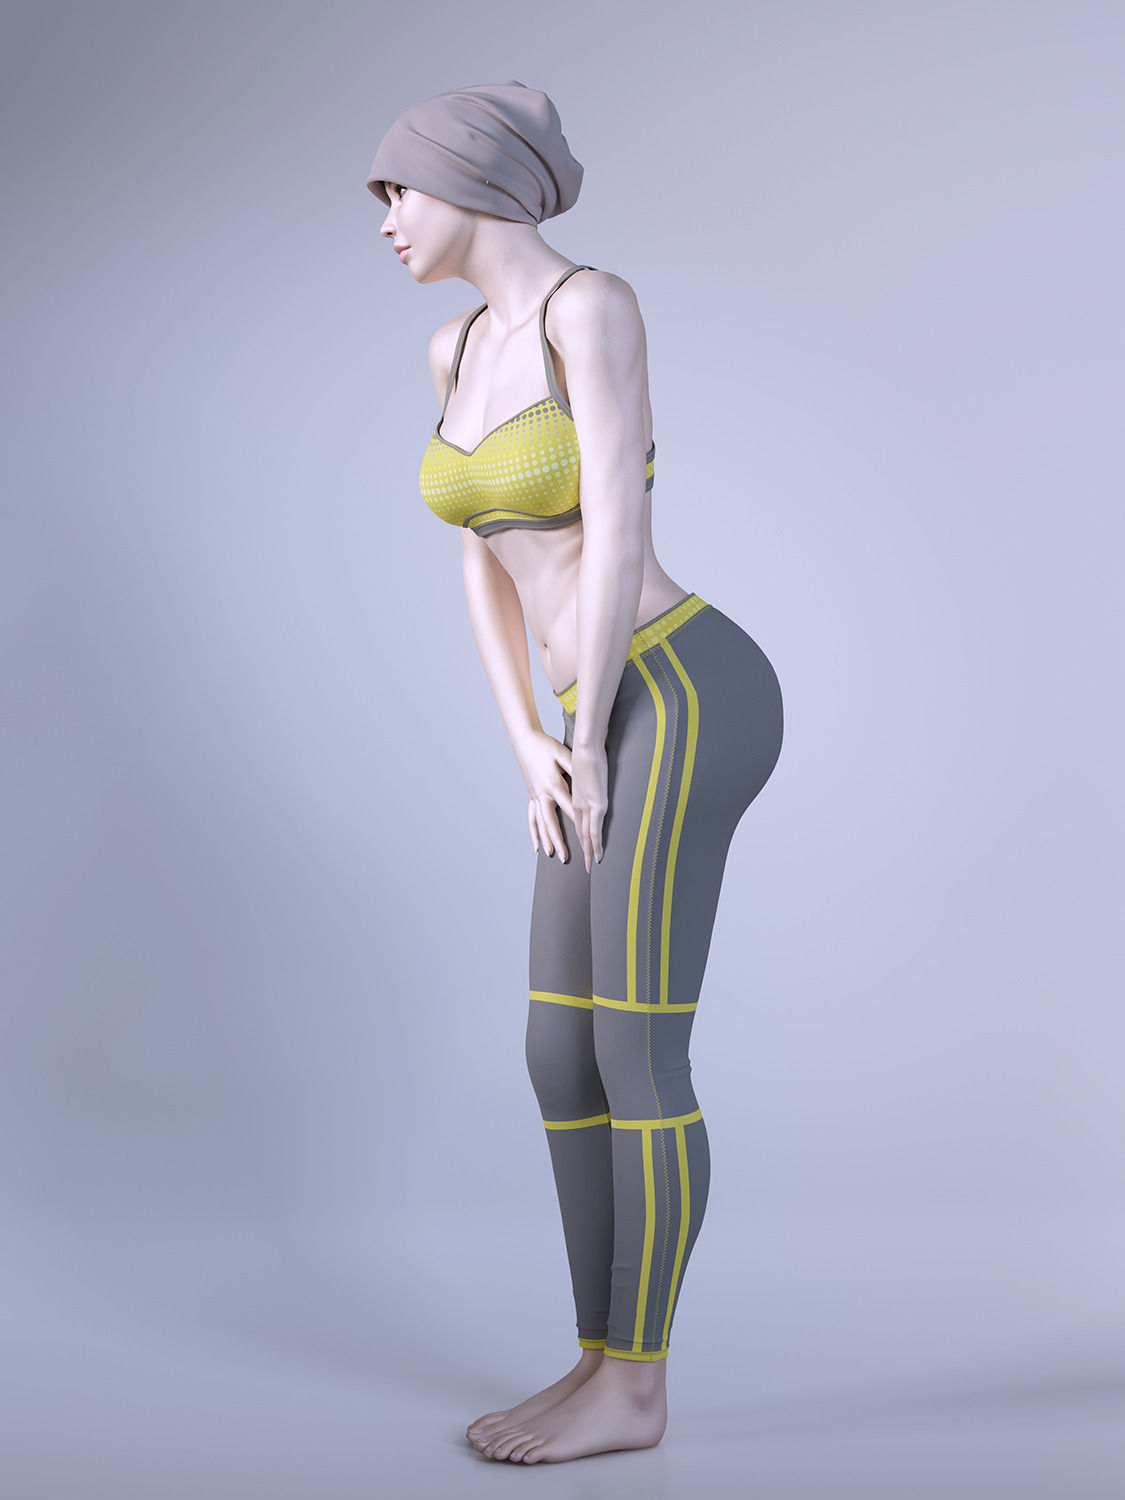 3d Models For Poser And Daz Studio: Female Fitness Instructor 3D Model .max .obj .fbx